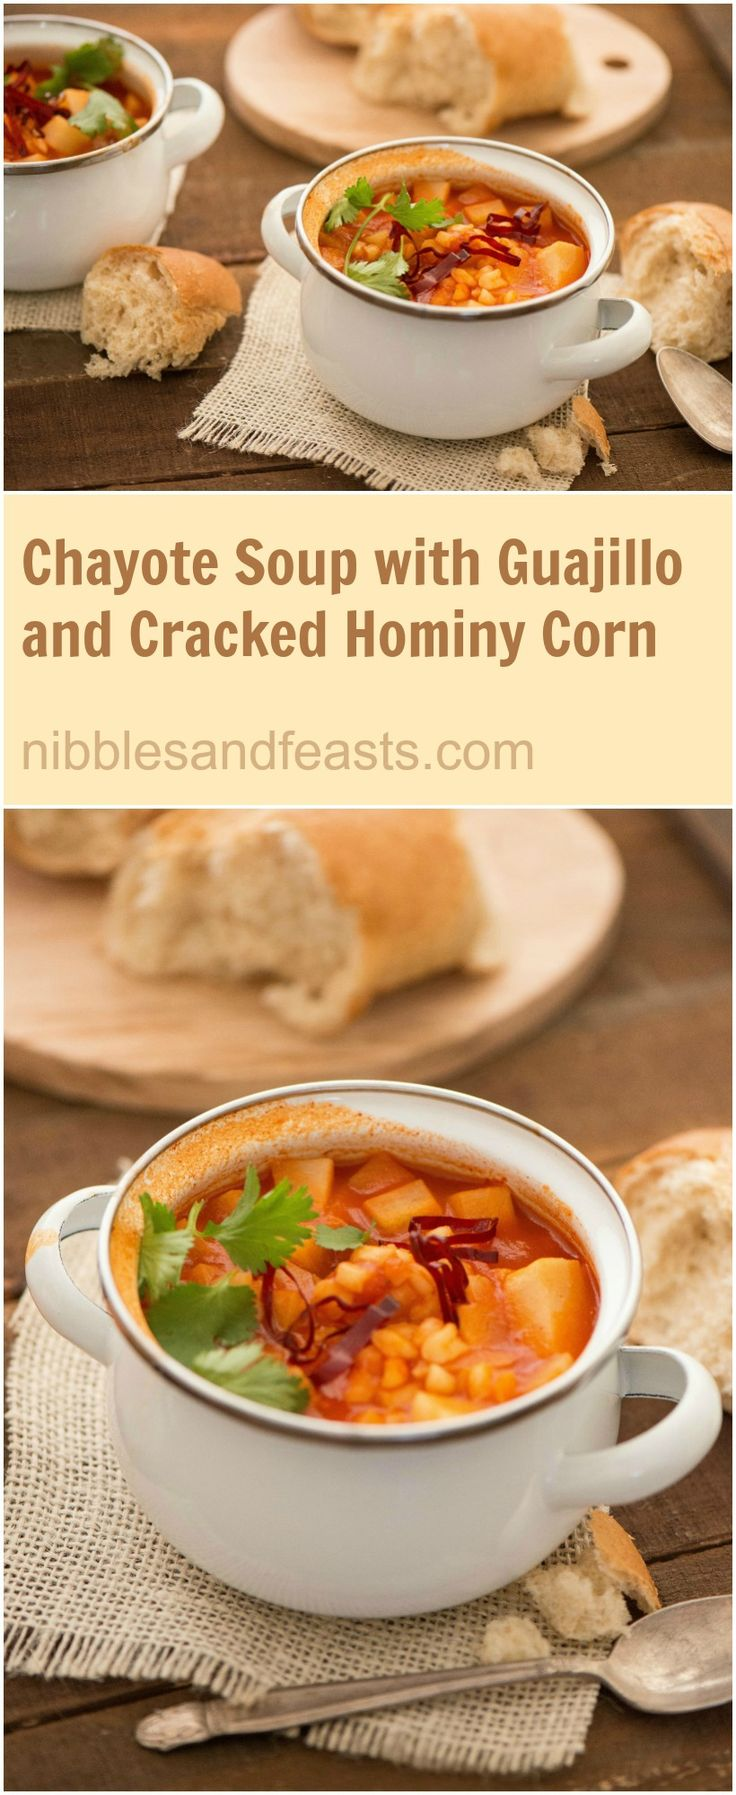 Chayote Soup with Guajillo and Cracked Hominy Corn.  Tender chayote with bits of cracked hominy corn and hints of dry guajillo chile in a brothy tomato base is the perfect way to start off your week.  @huntschef HuntsAtHome Ad